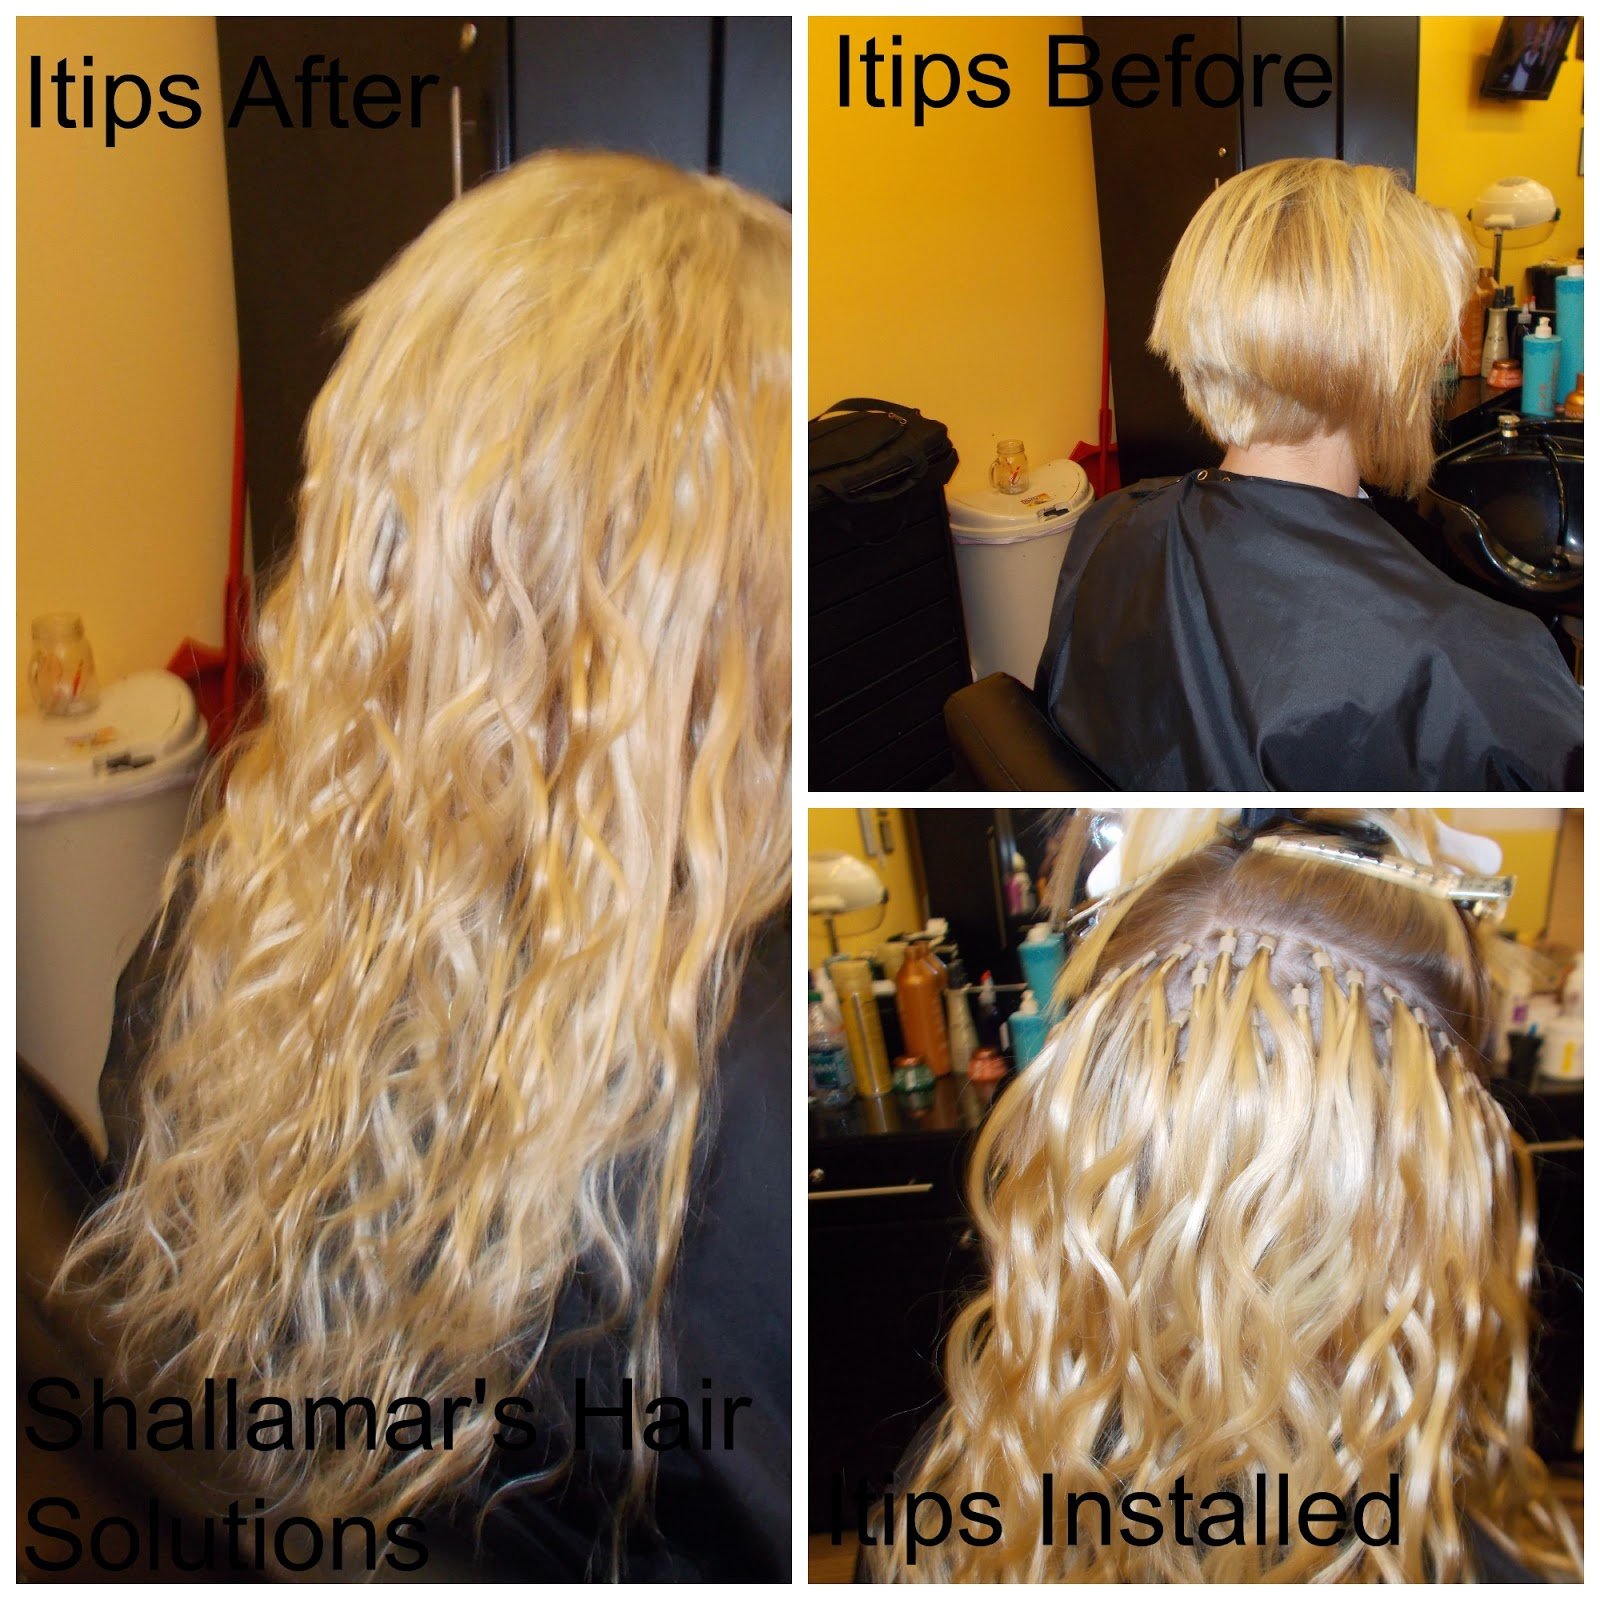 Cold Fusion Hair Extensions Orlando Florida Human Hair Extensions